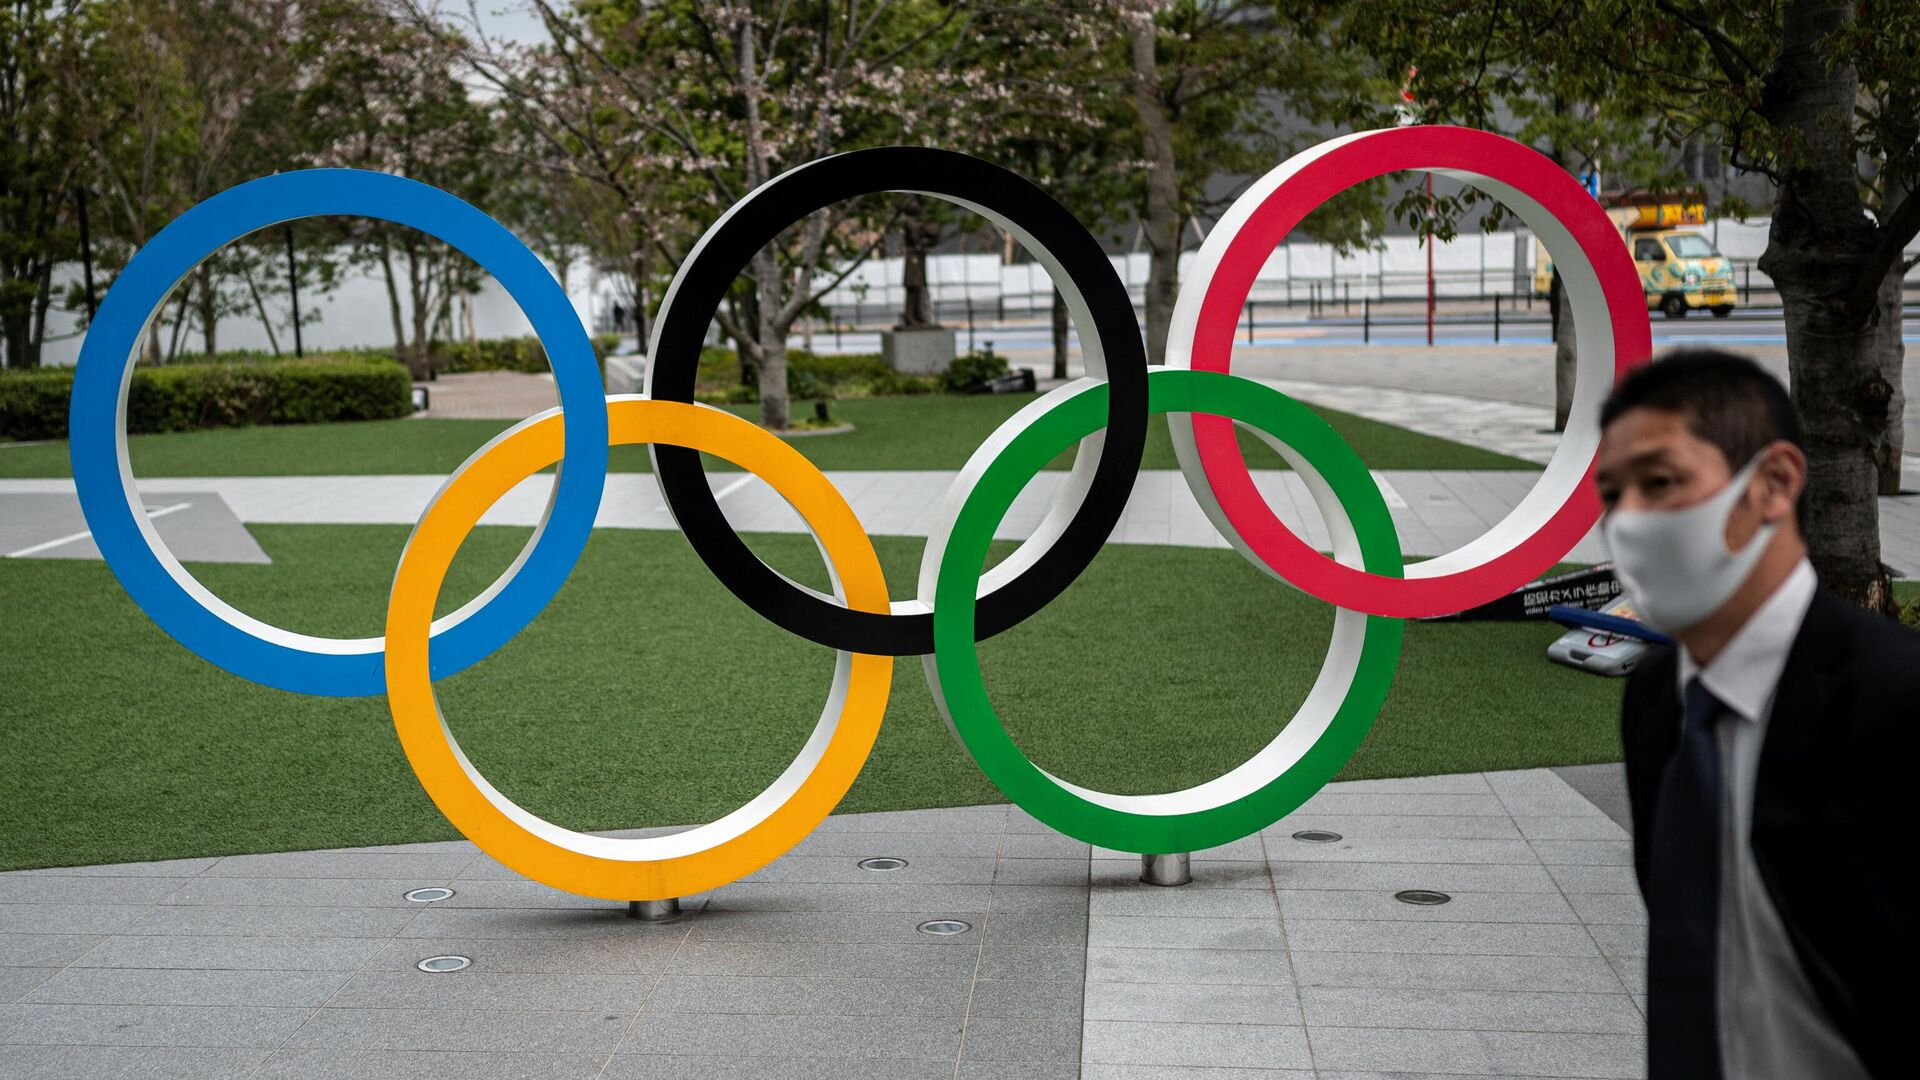 This picture shows the Olympic Rings outside the Japan Olympic Museum in Tokyo on March 22, 2021. (Photo by Charly TRIBALLEAU / AFP) - РИА Новости, 1920, 22.07.2021